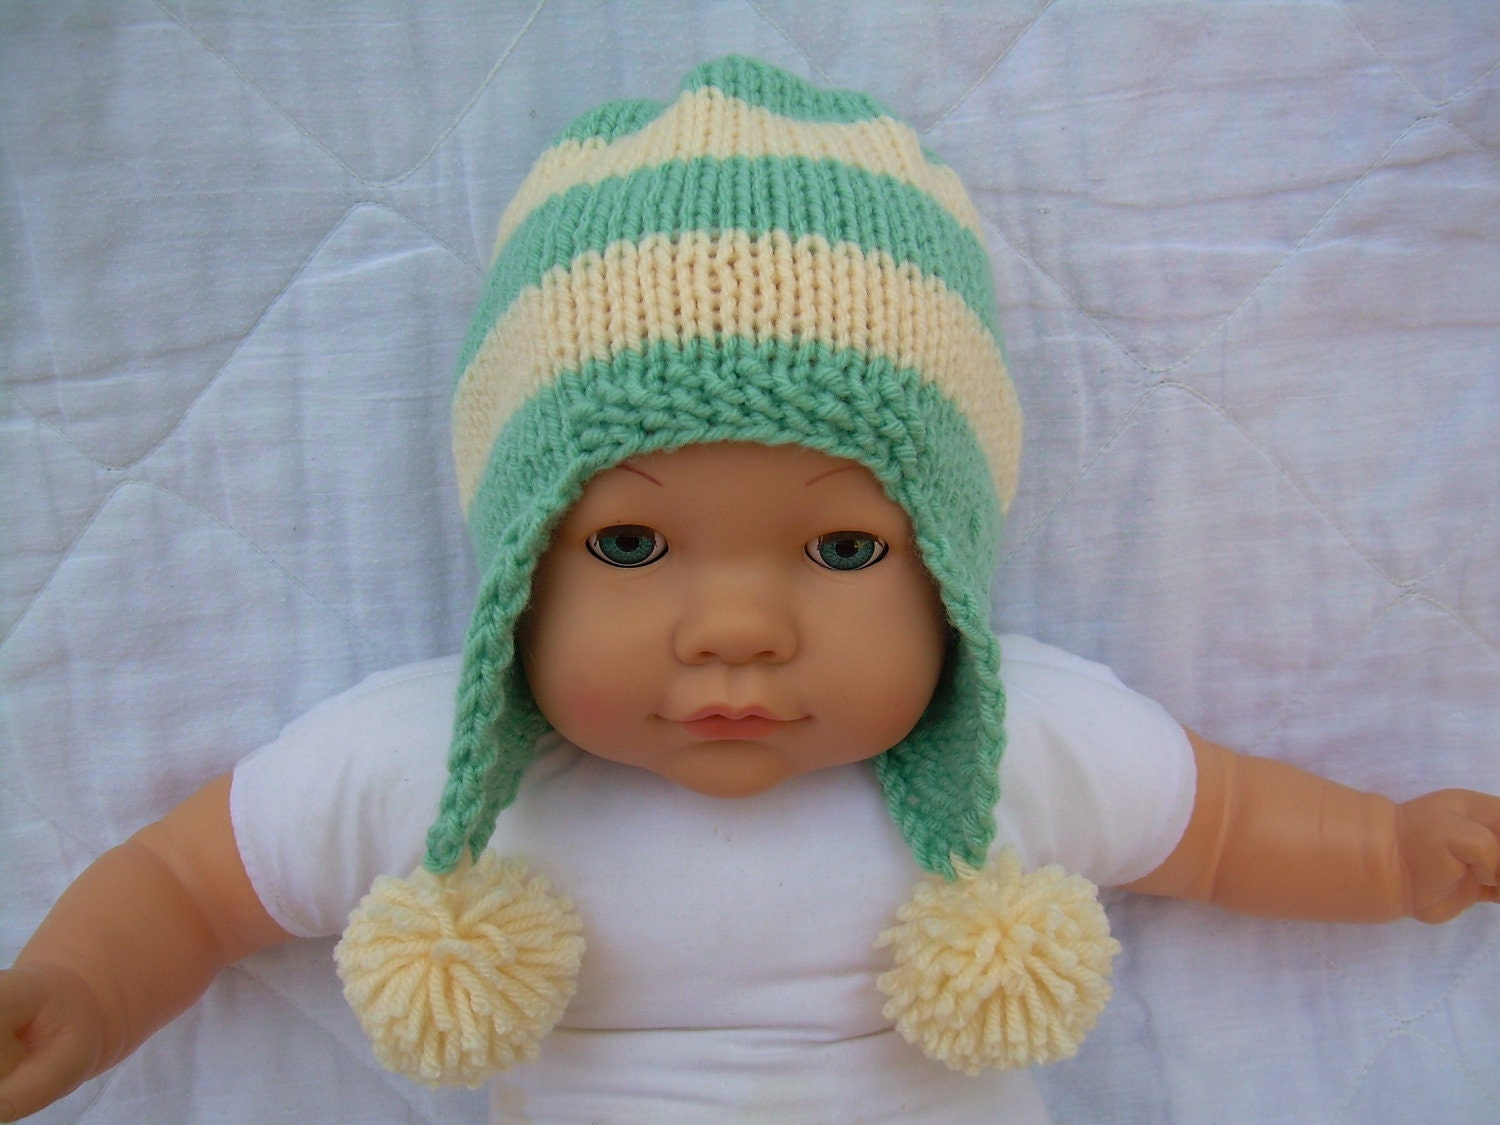 Knit Baby Beanie Hat with Ear Flaps and Pom Poms 0 by Jadescloset